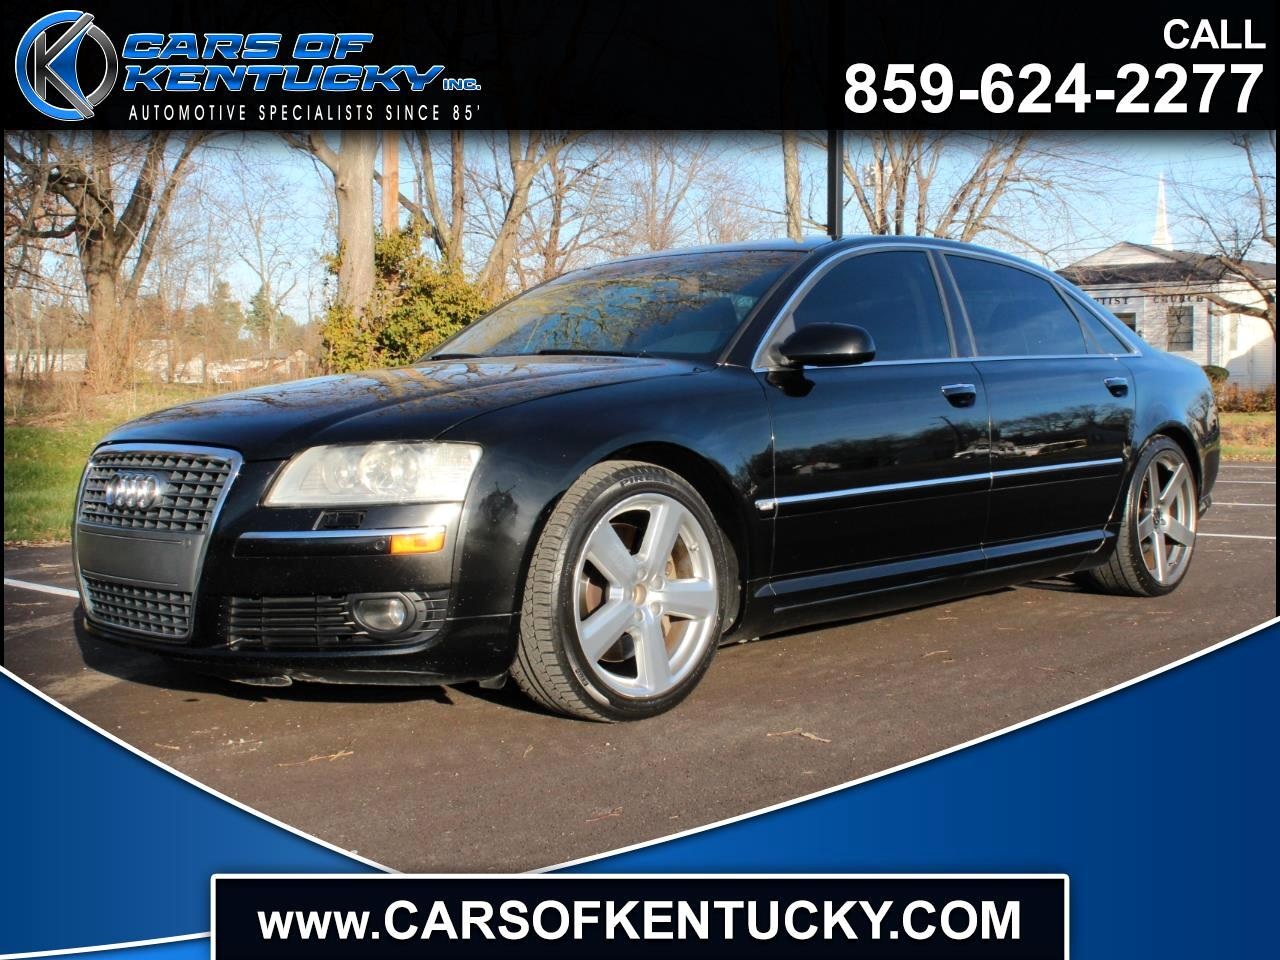 Used Trucks For Sale In Ky >> Used Cars For Sale Richmond Ky 40475 Cars Of Kentucky